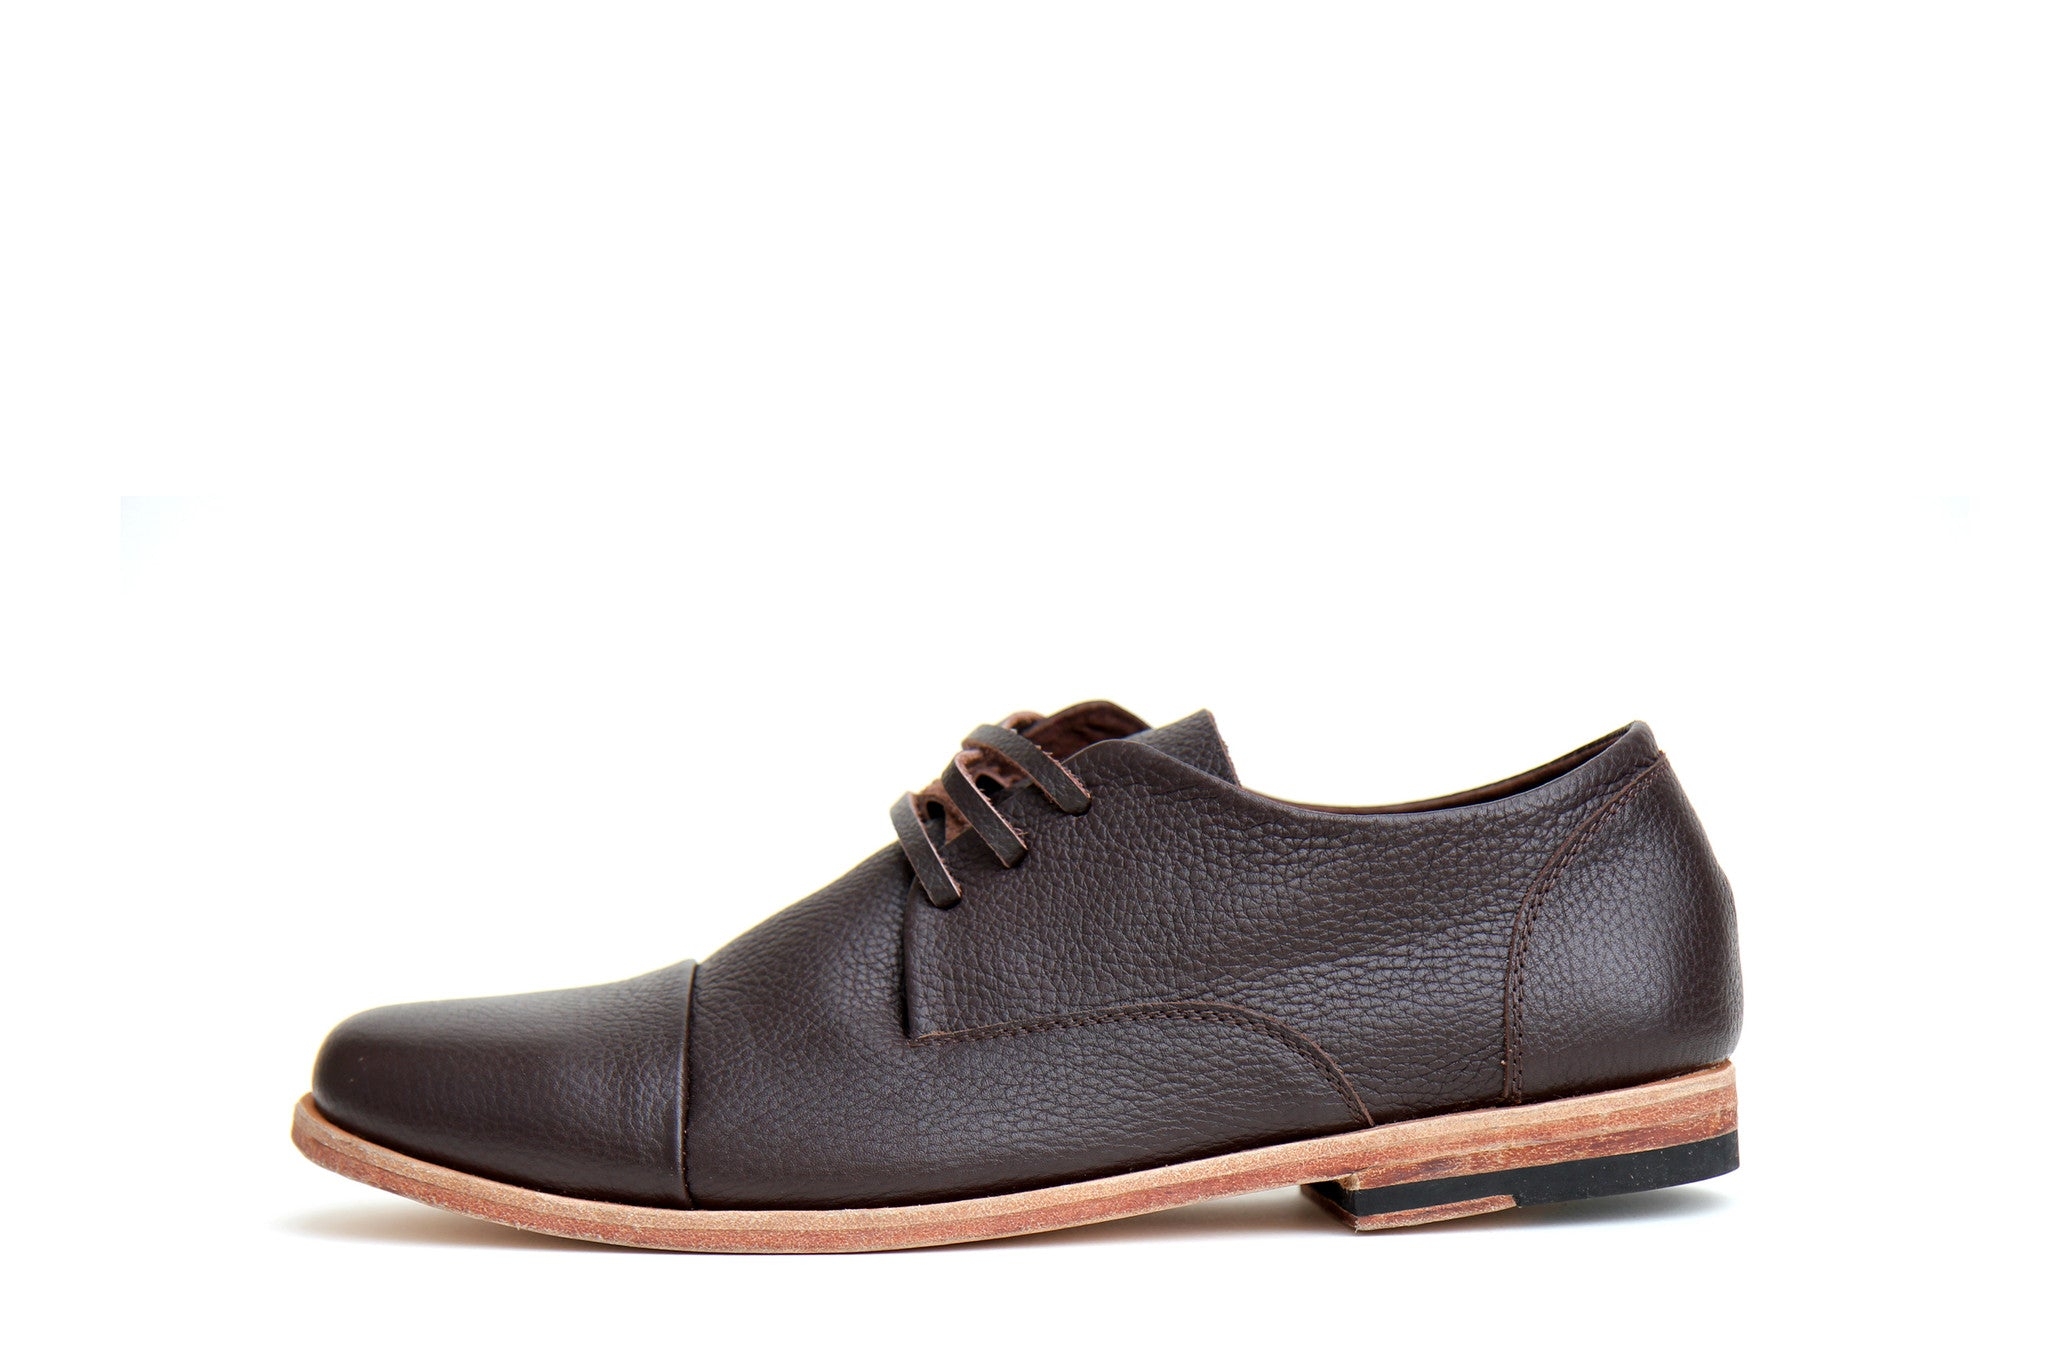 Men's Footwear: Heathen - Choc - Leather sole | Mere